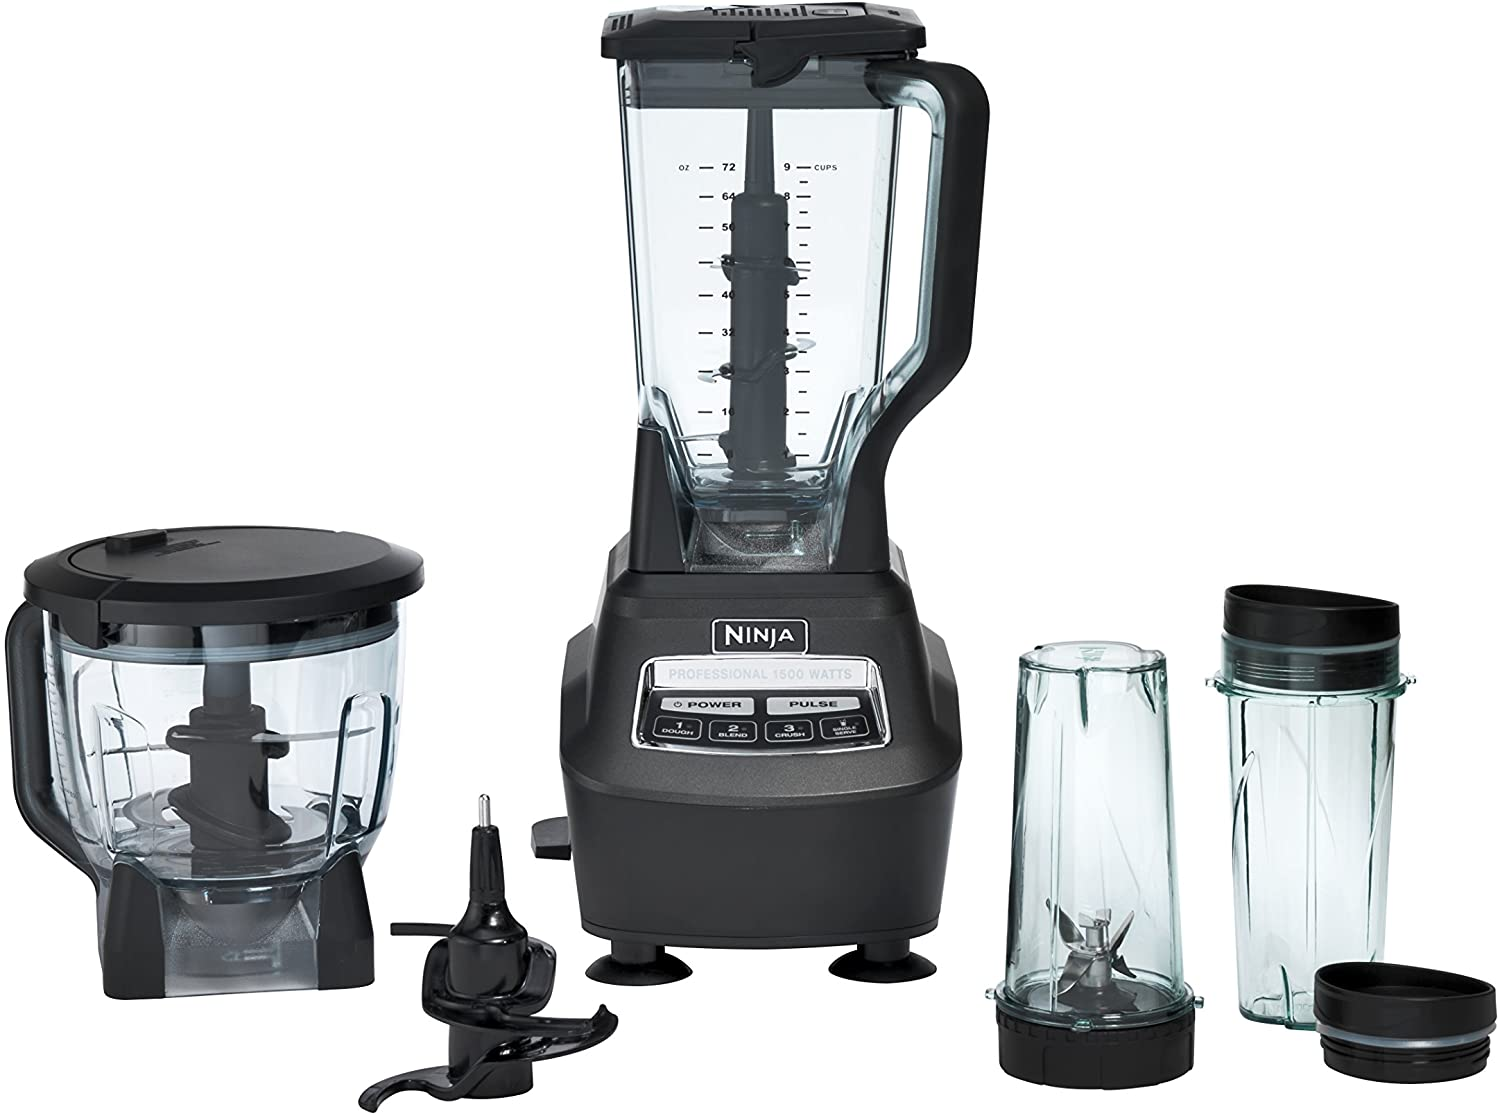 How To Make A Bread Dough With Ninja Blender?